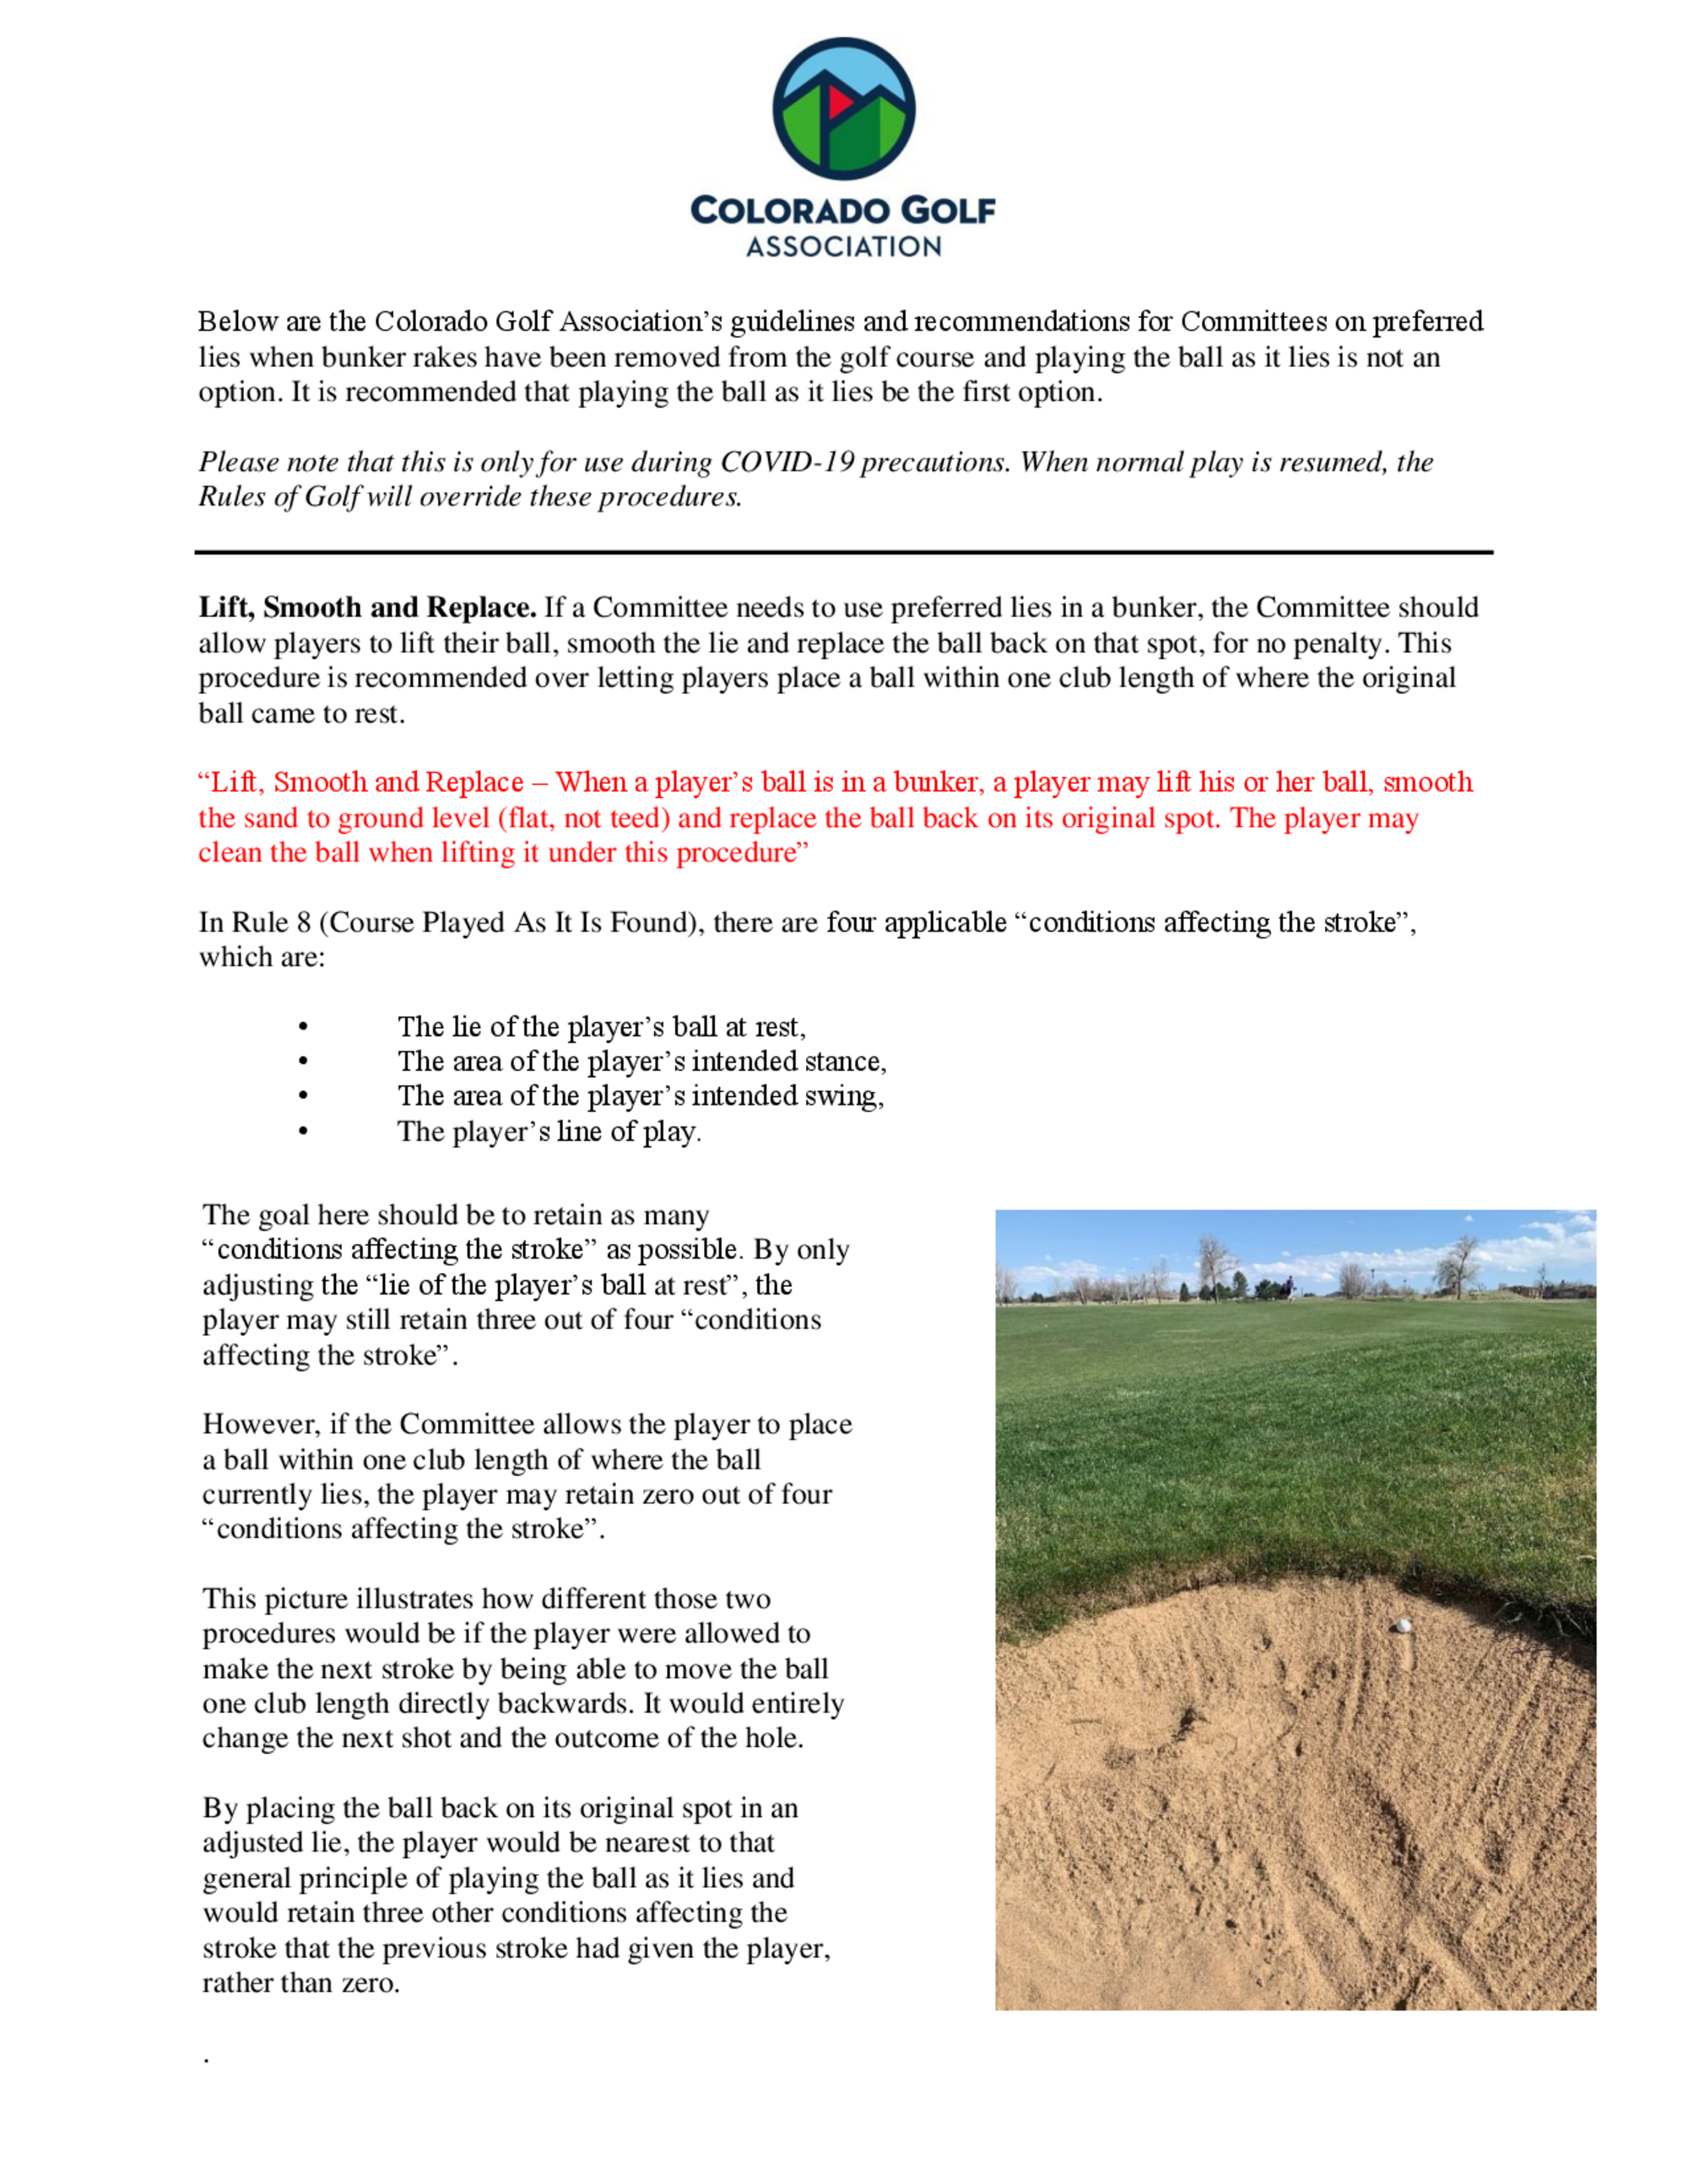 Lift clean and replace in a bunker   official wording   no penalty structure 1